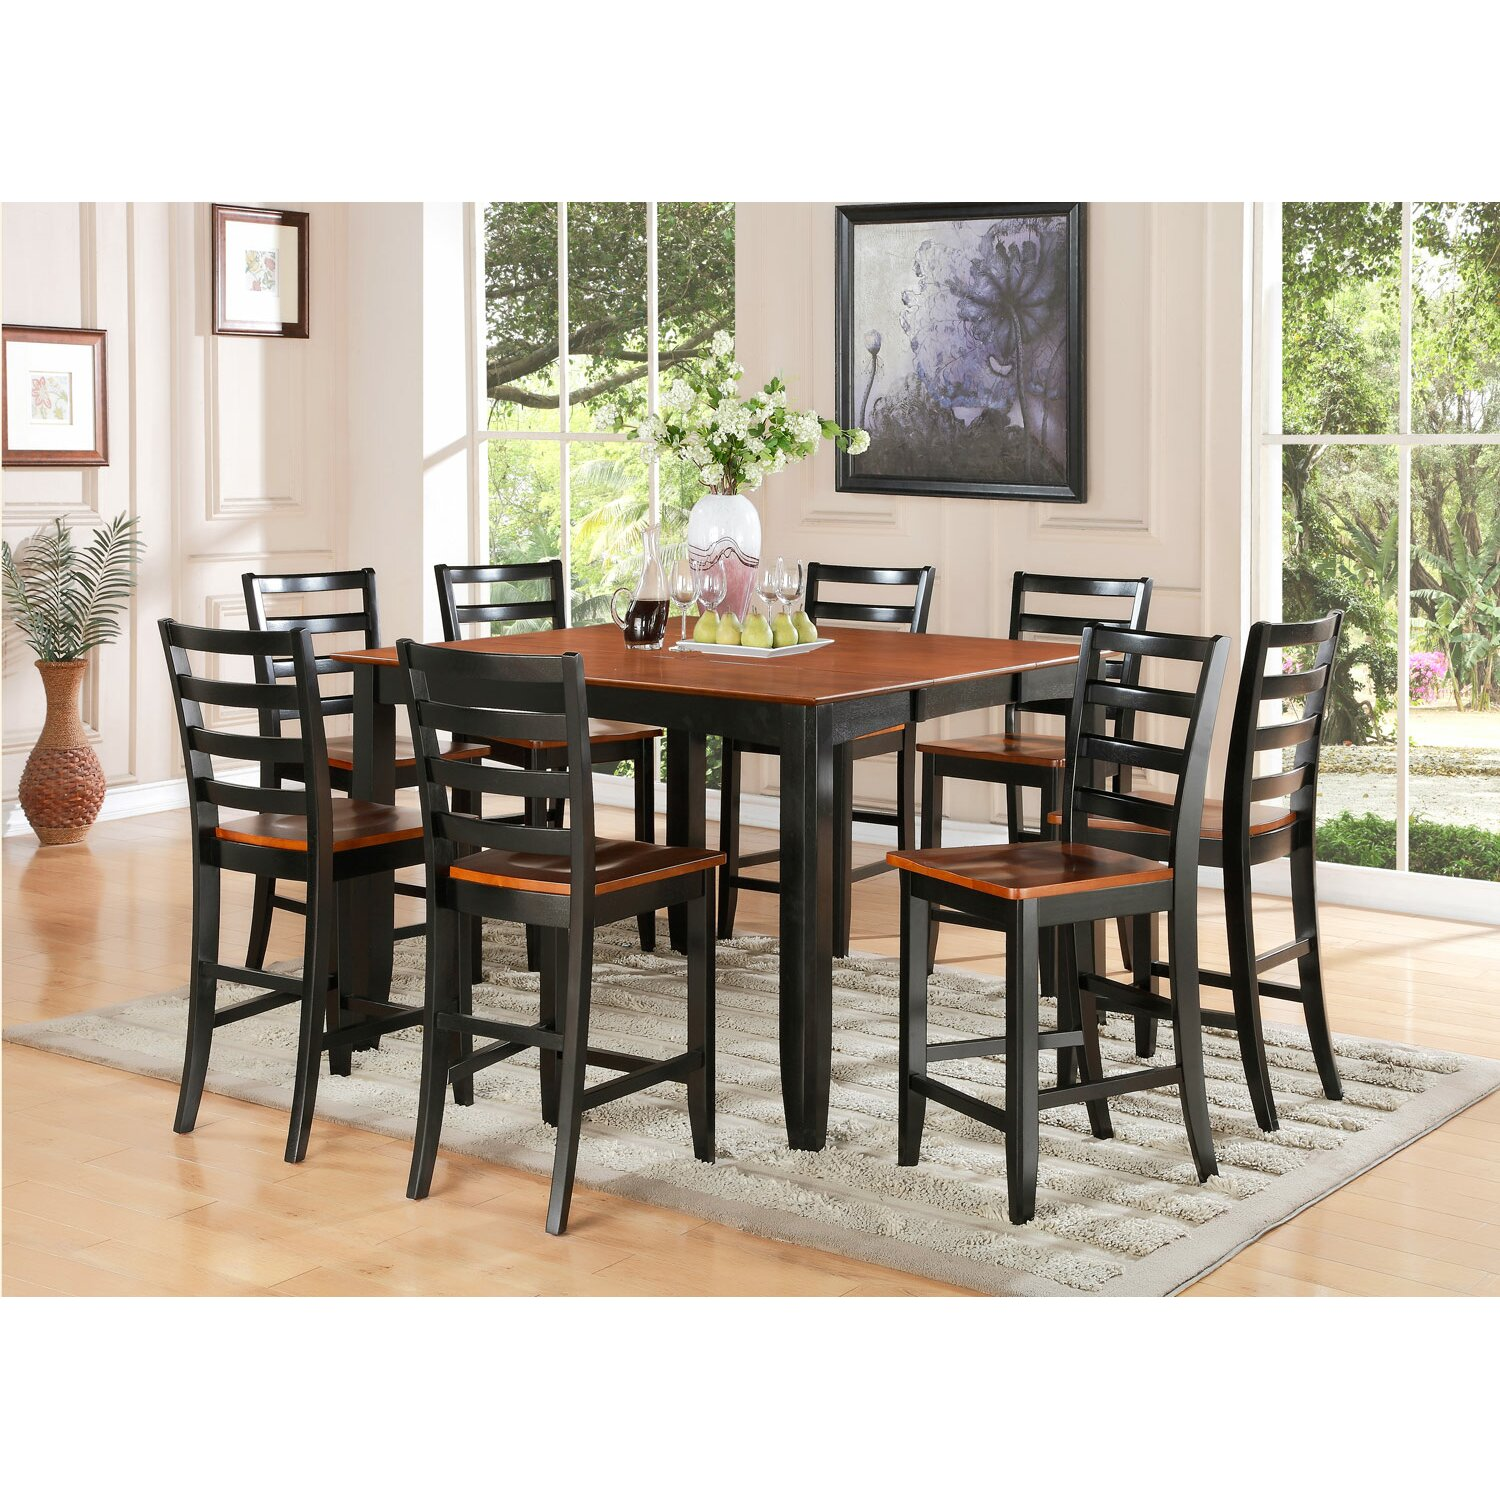 Wooden importers parfait 9 piece counter height dining set for Tall dinner table set